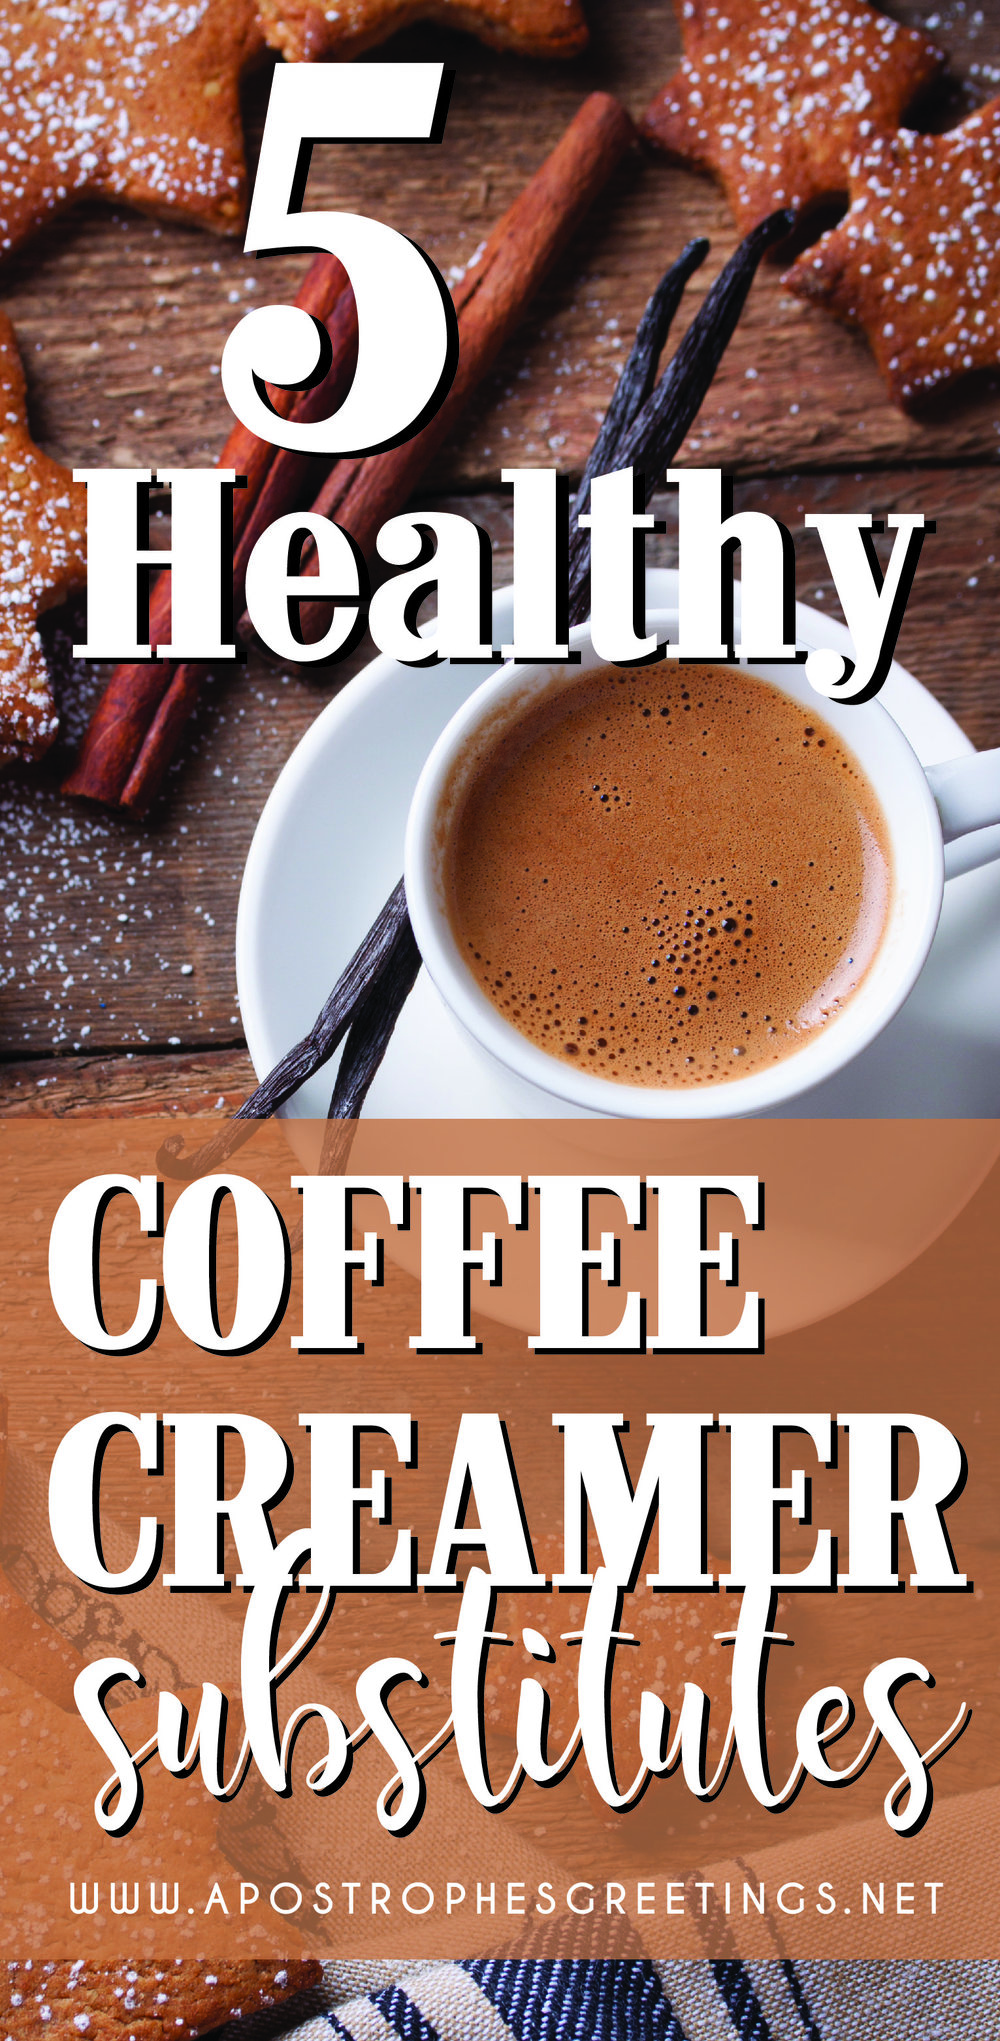 5 coffee creamer substitutes that are healthy